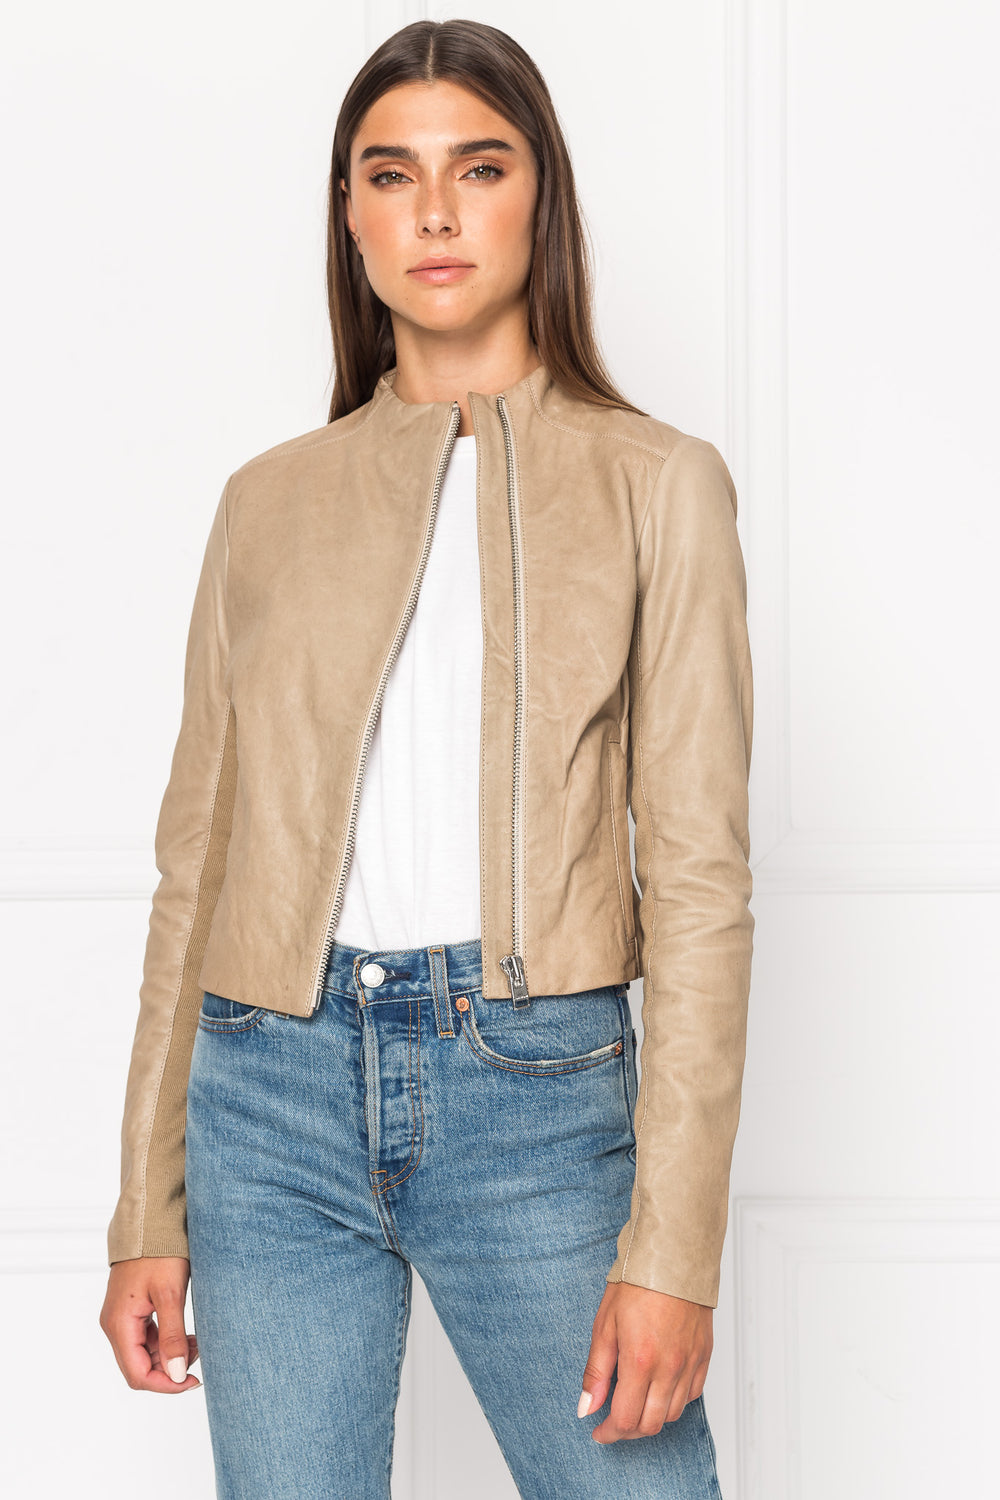 KAILA Bone Asymmetric Leather Jacket